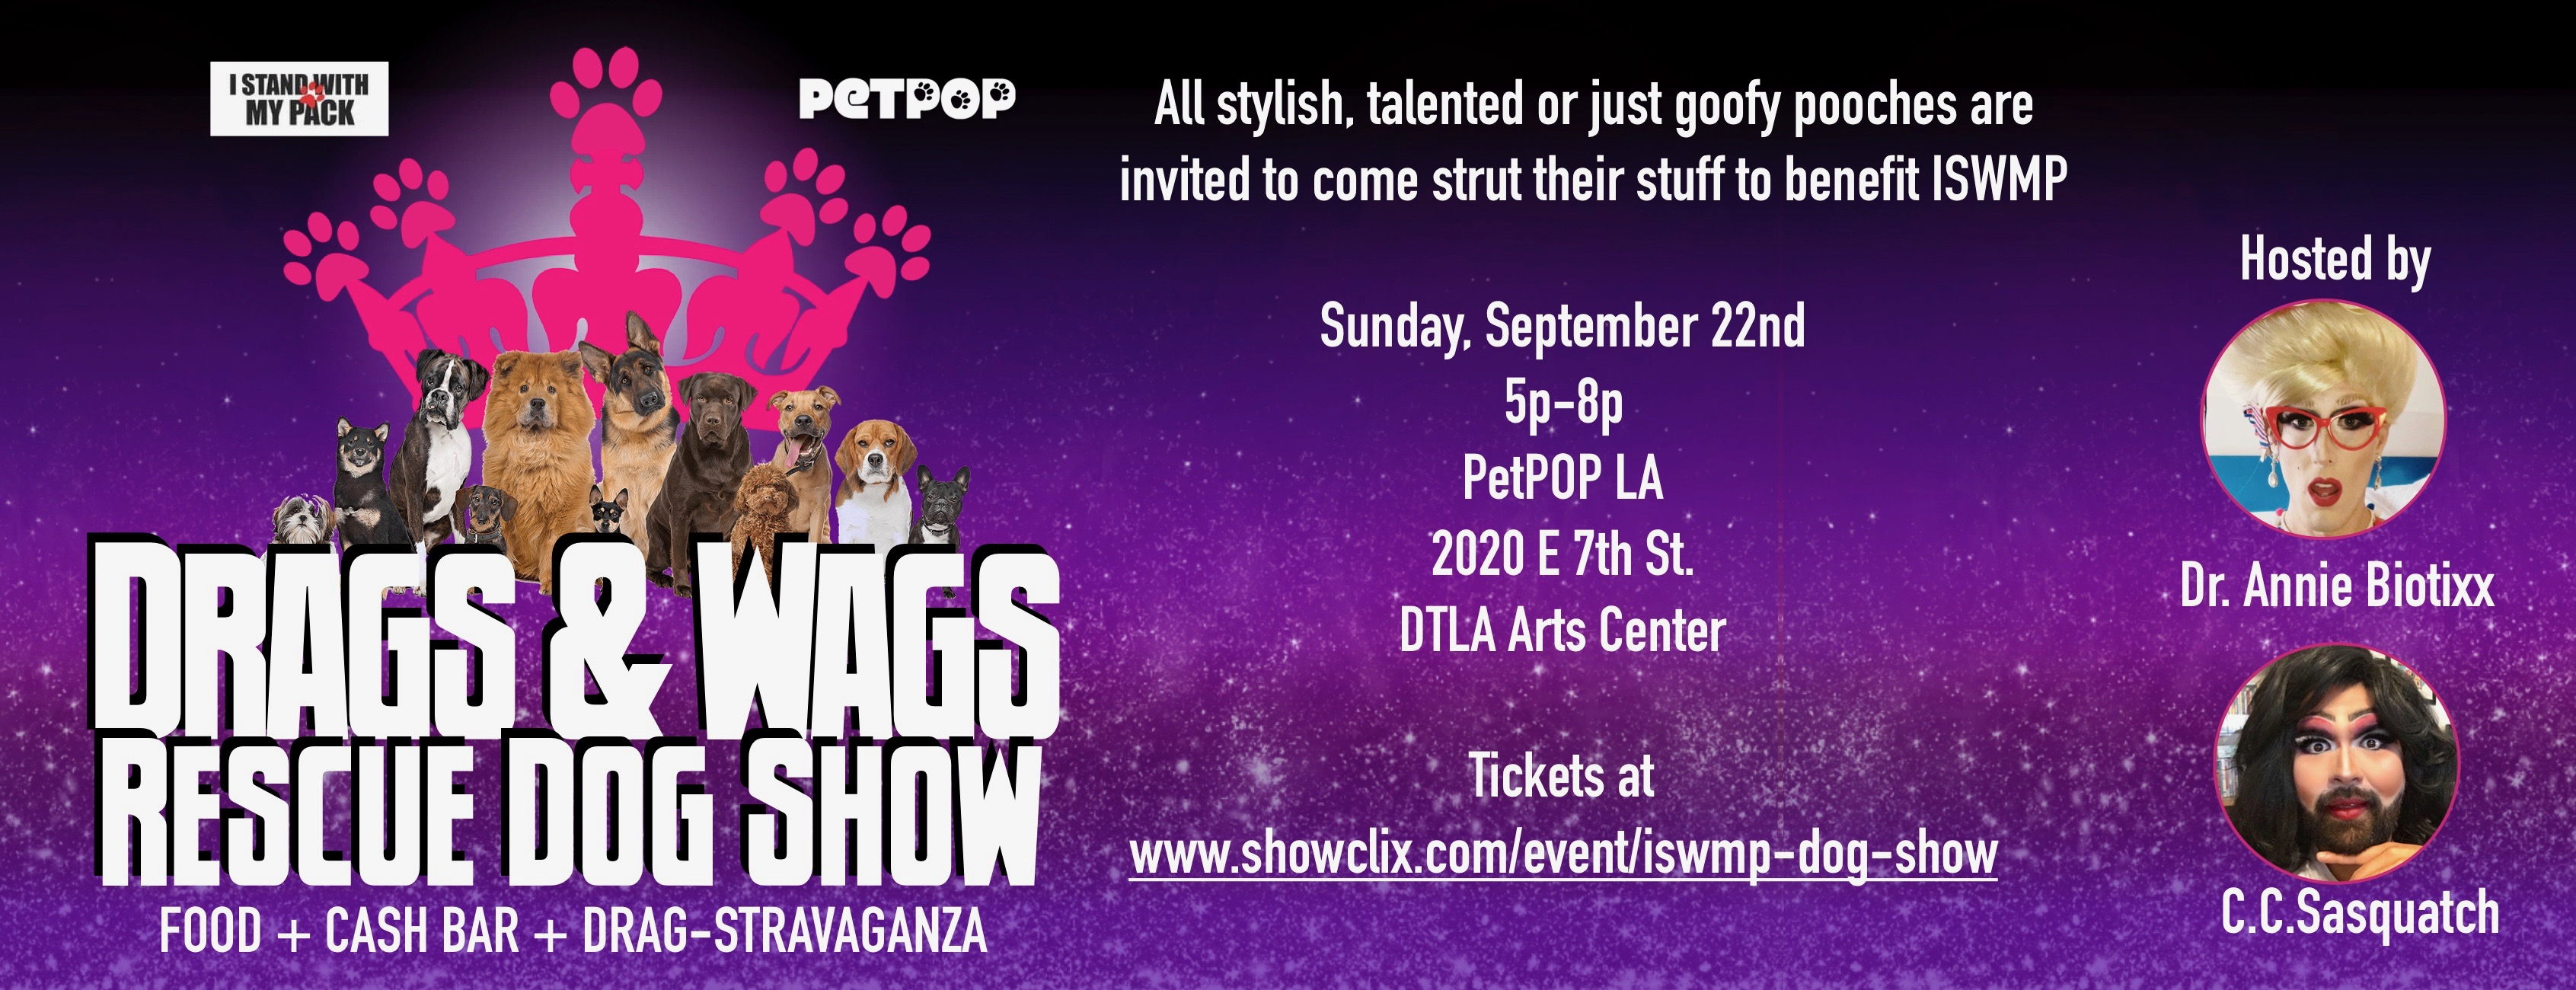 Tickets for Drags and Wags Rescue Dog Show in Los Angeles from ShowClix